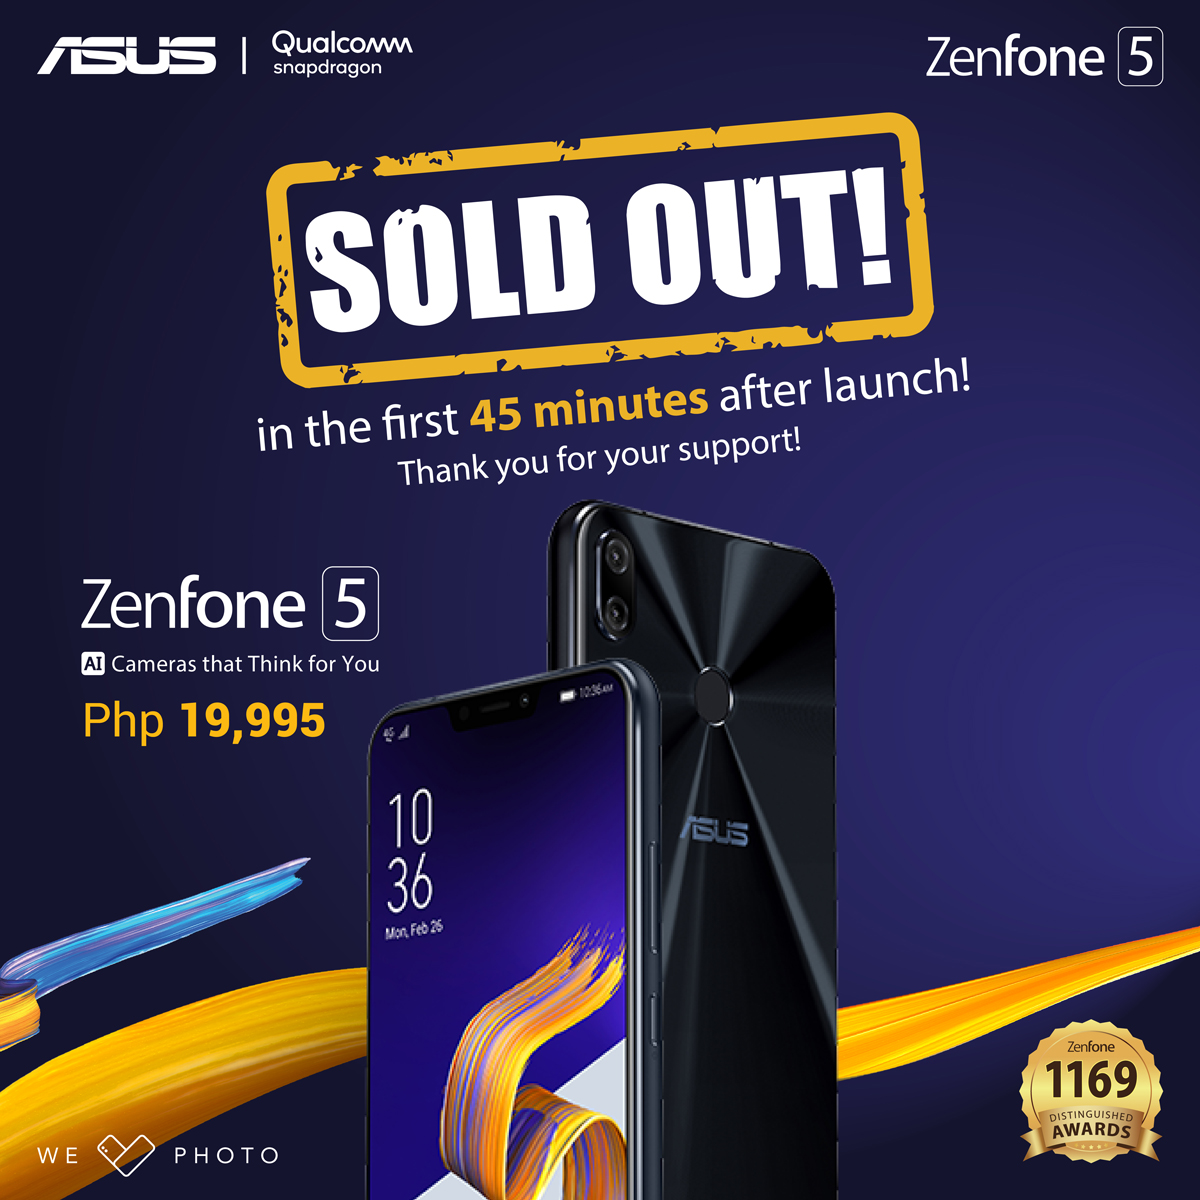 ZENFONE 5 GETS SOLD OUT IN JUST 45 MINUTES!